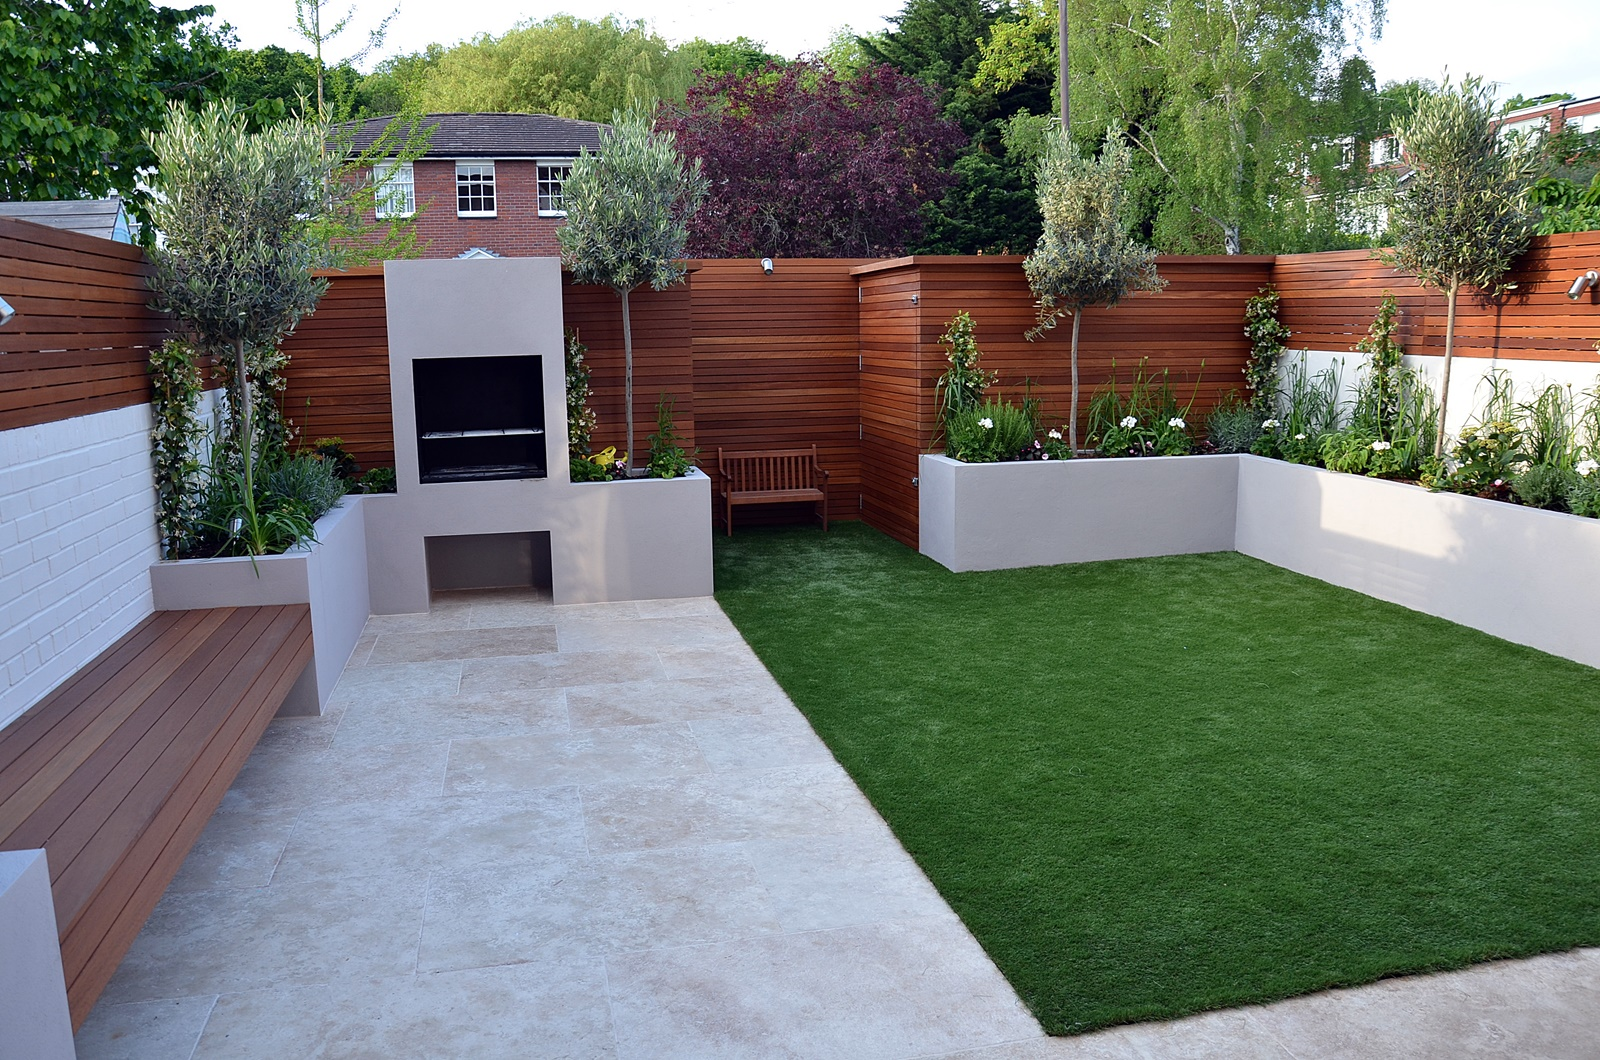 Modern garden design fulham chelsea clapham battersea for Garden decking designs uk